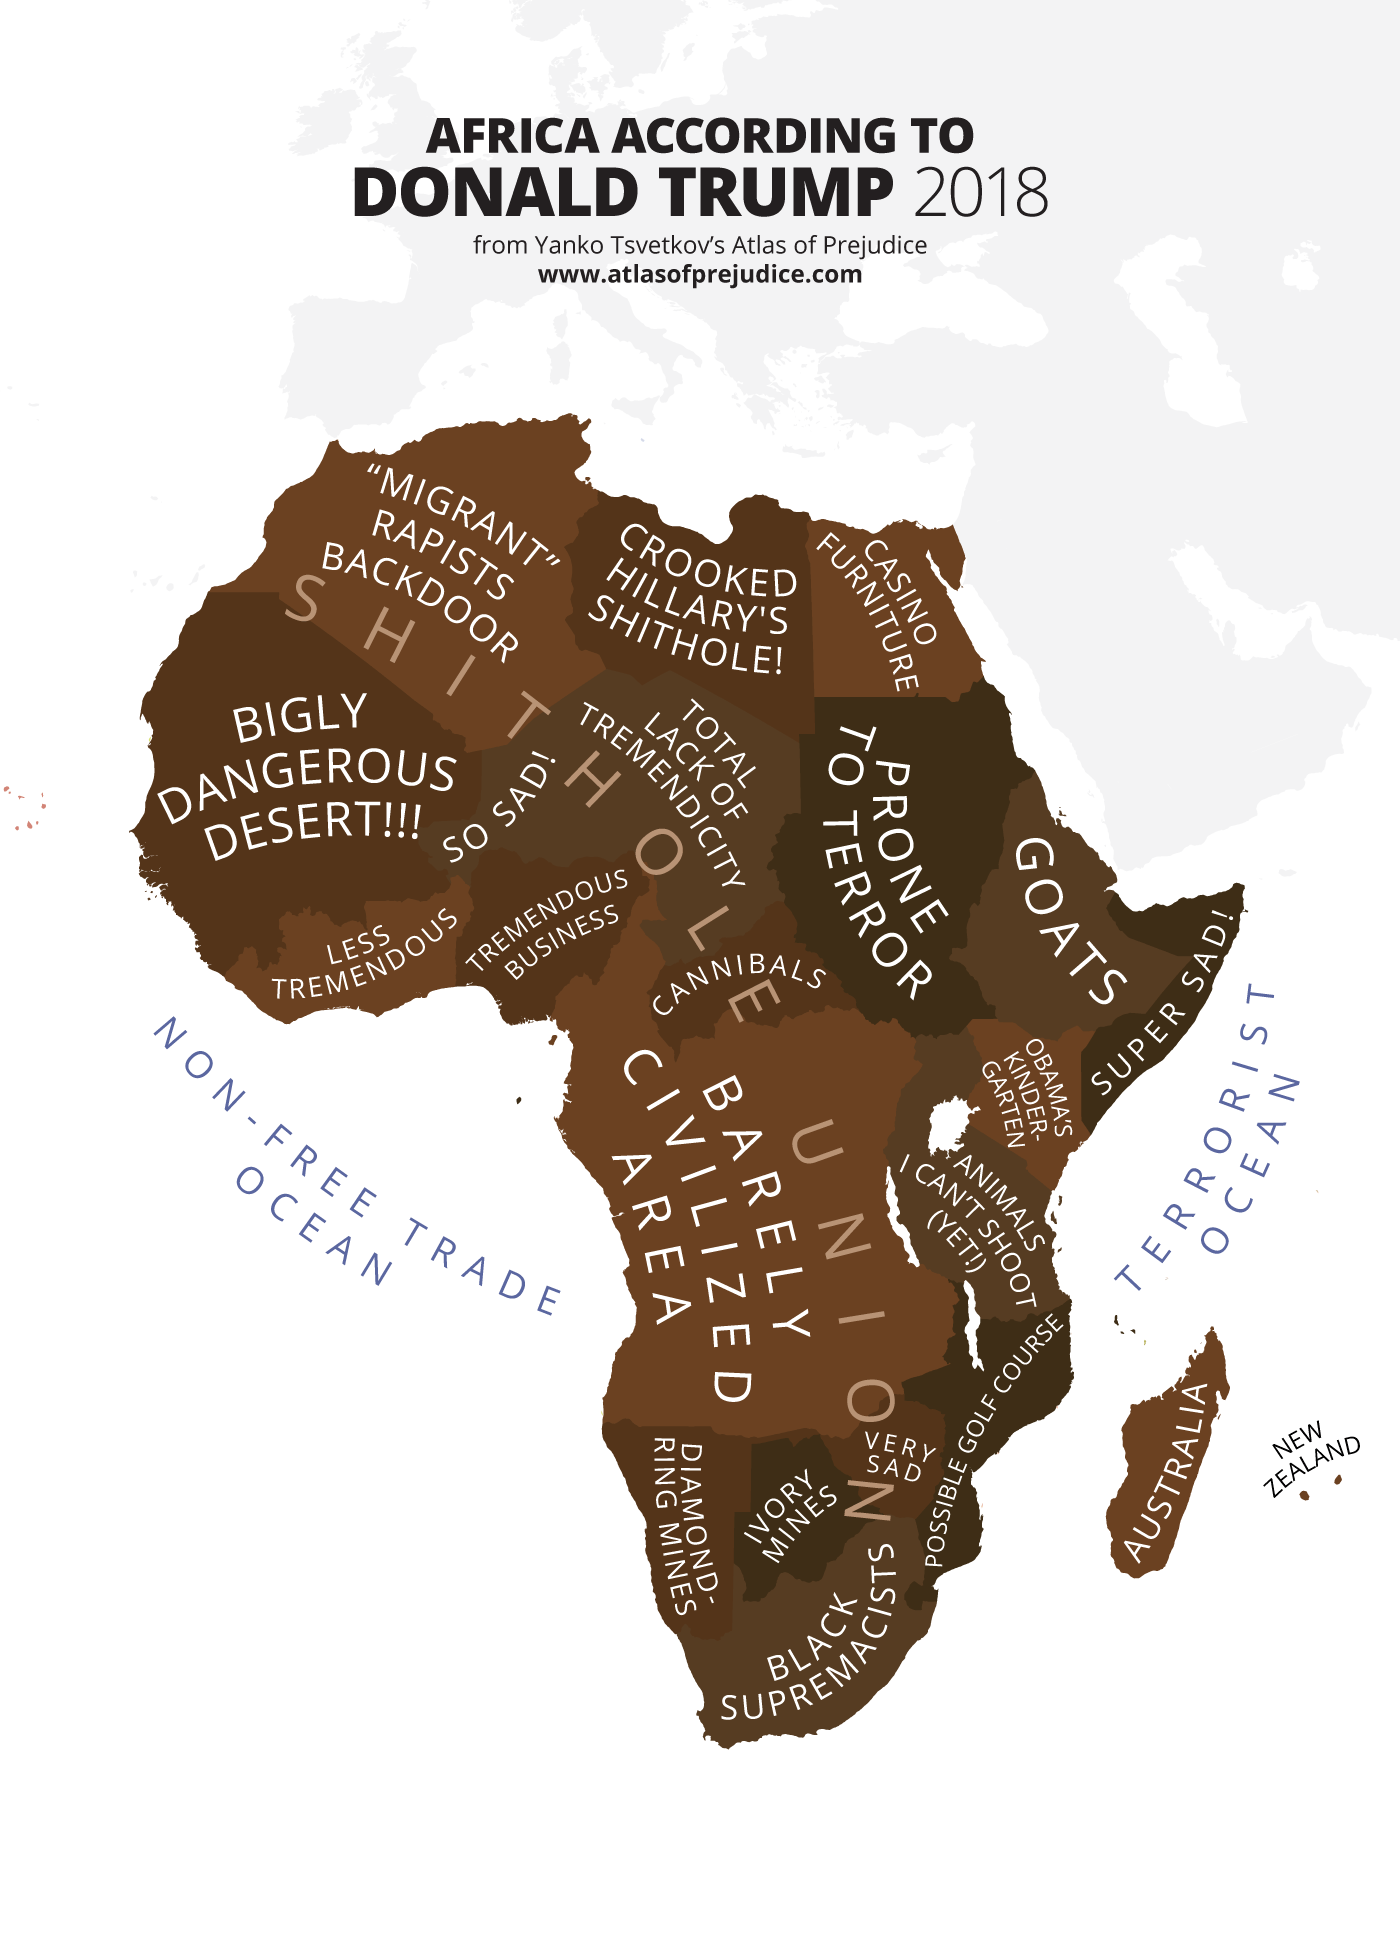 Africa According To Donald Trump